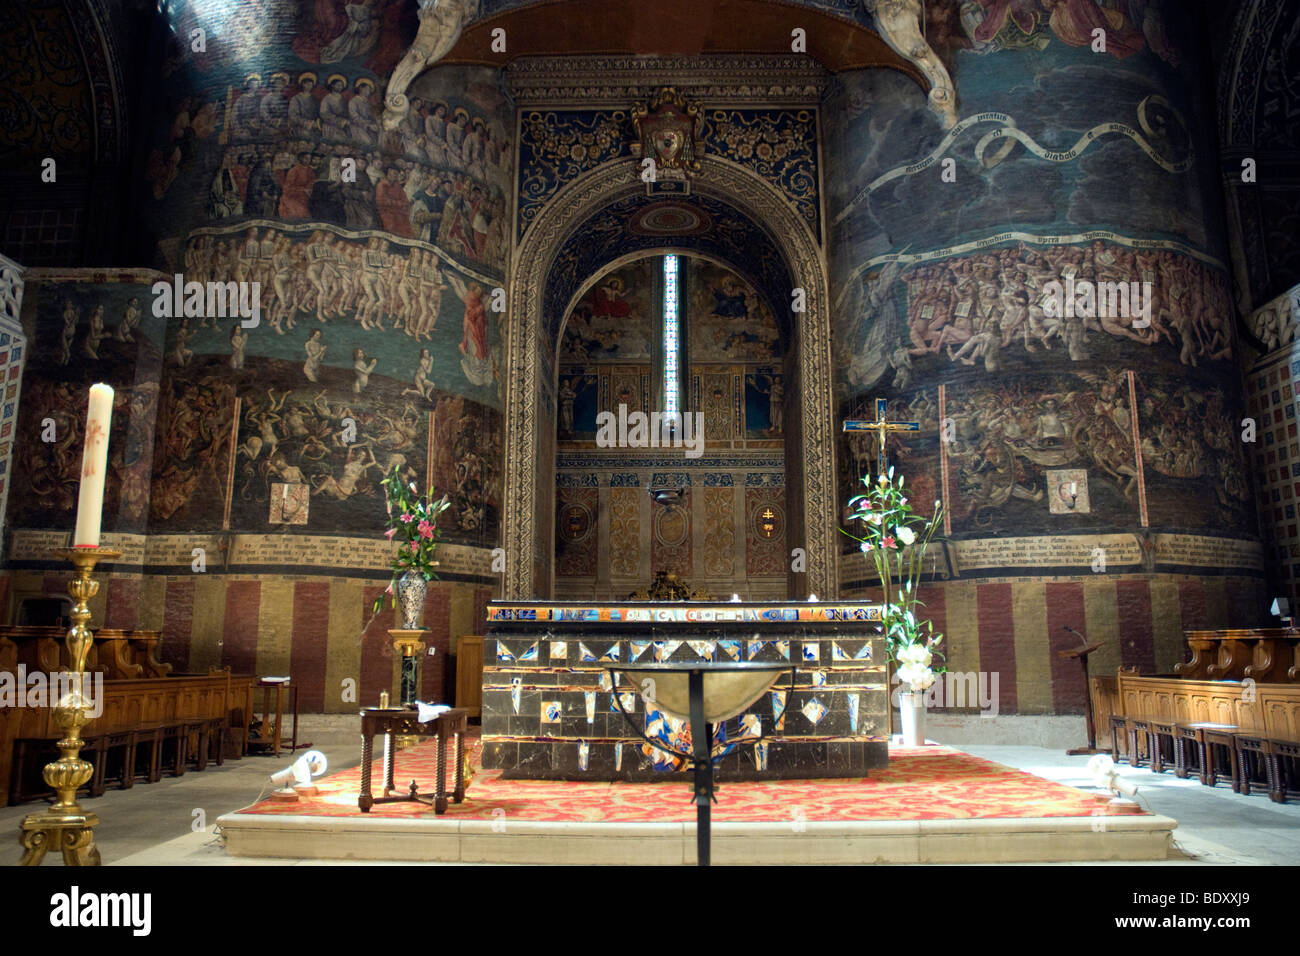 cathedral of sainte cecile stockfotos cathedral of sainte cecile bilder seite 2 alamy. Black Bedroom Furniture Sets. Home Design Ideas